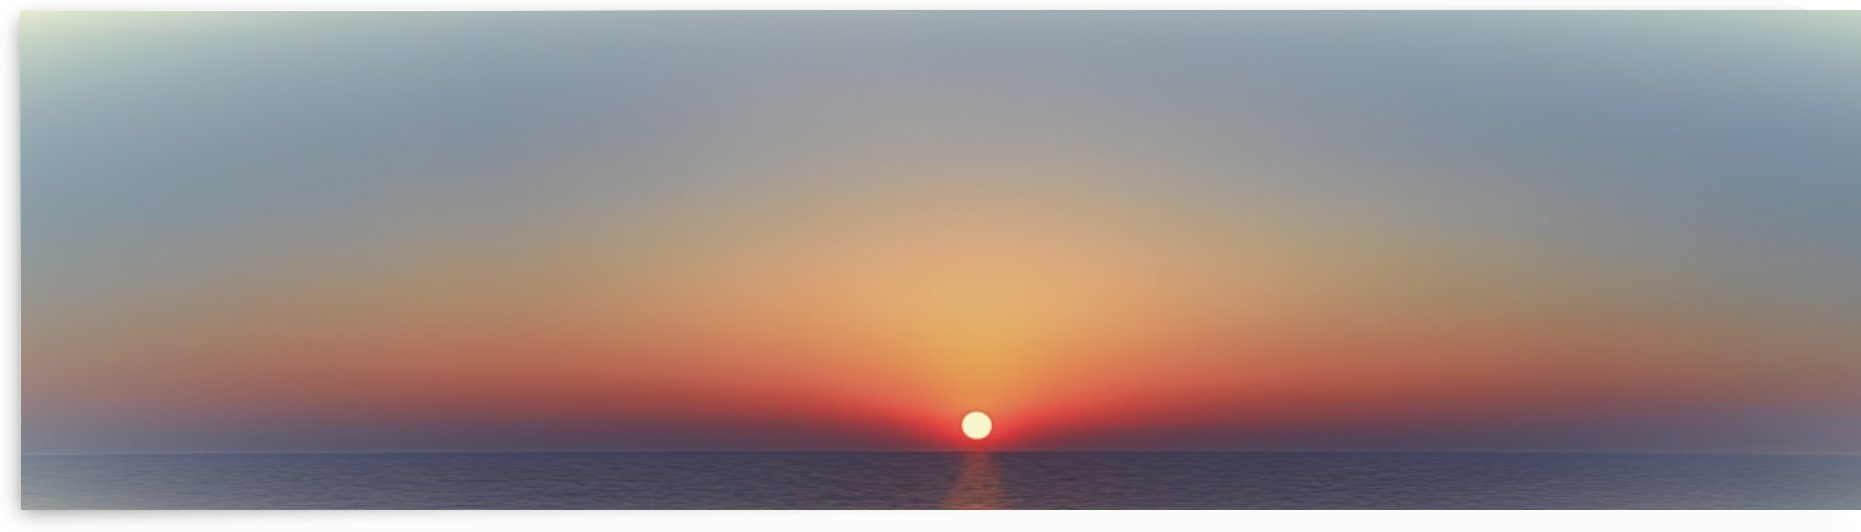 sunset  by Adrian Brockwell